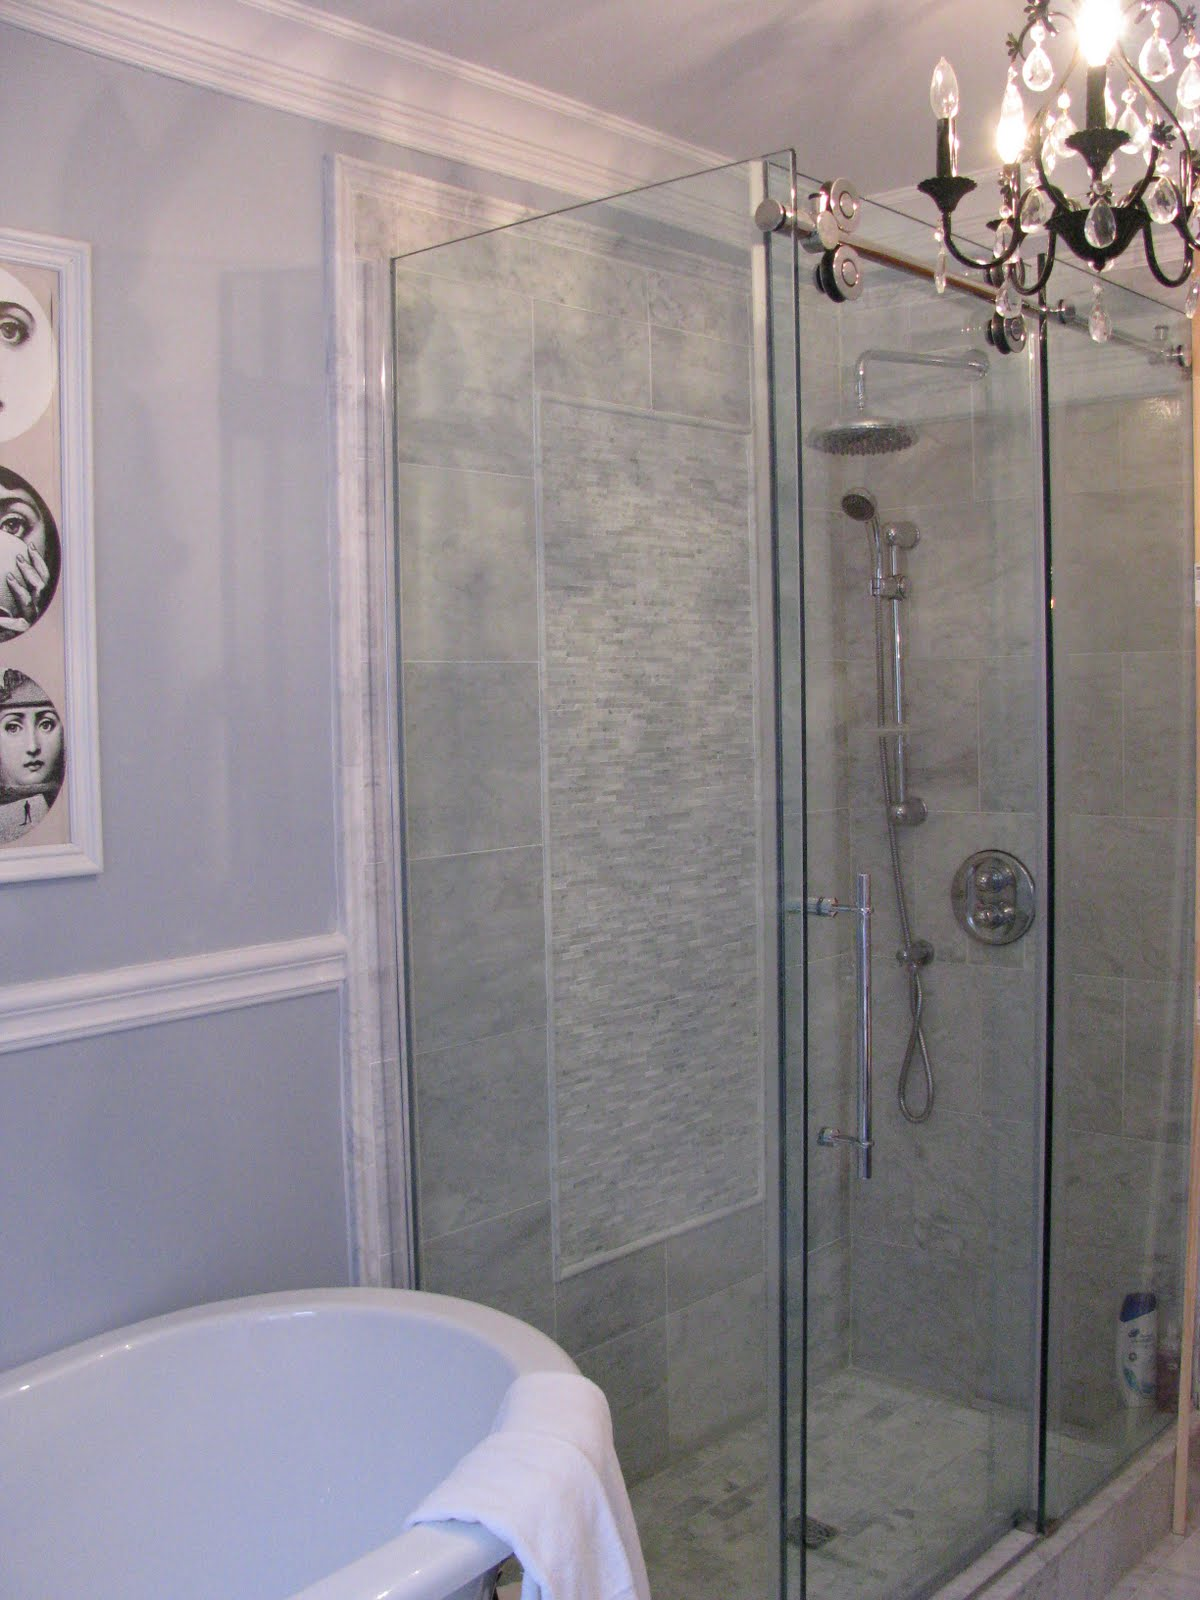 Remodelaholic Gorgeous Complete Bathroom Transformation Gut - How to gut a bathroom